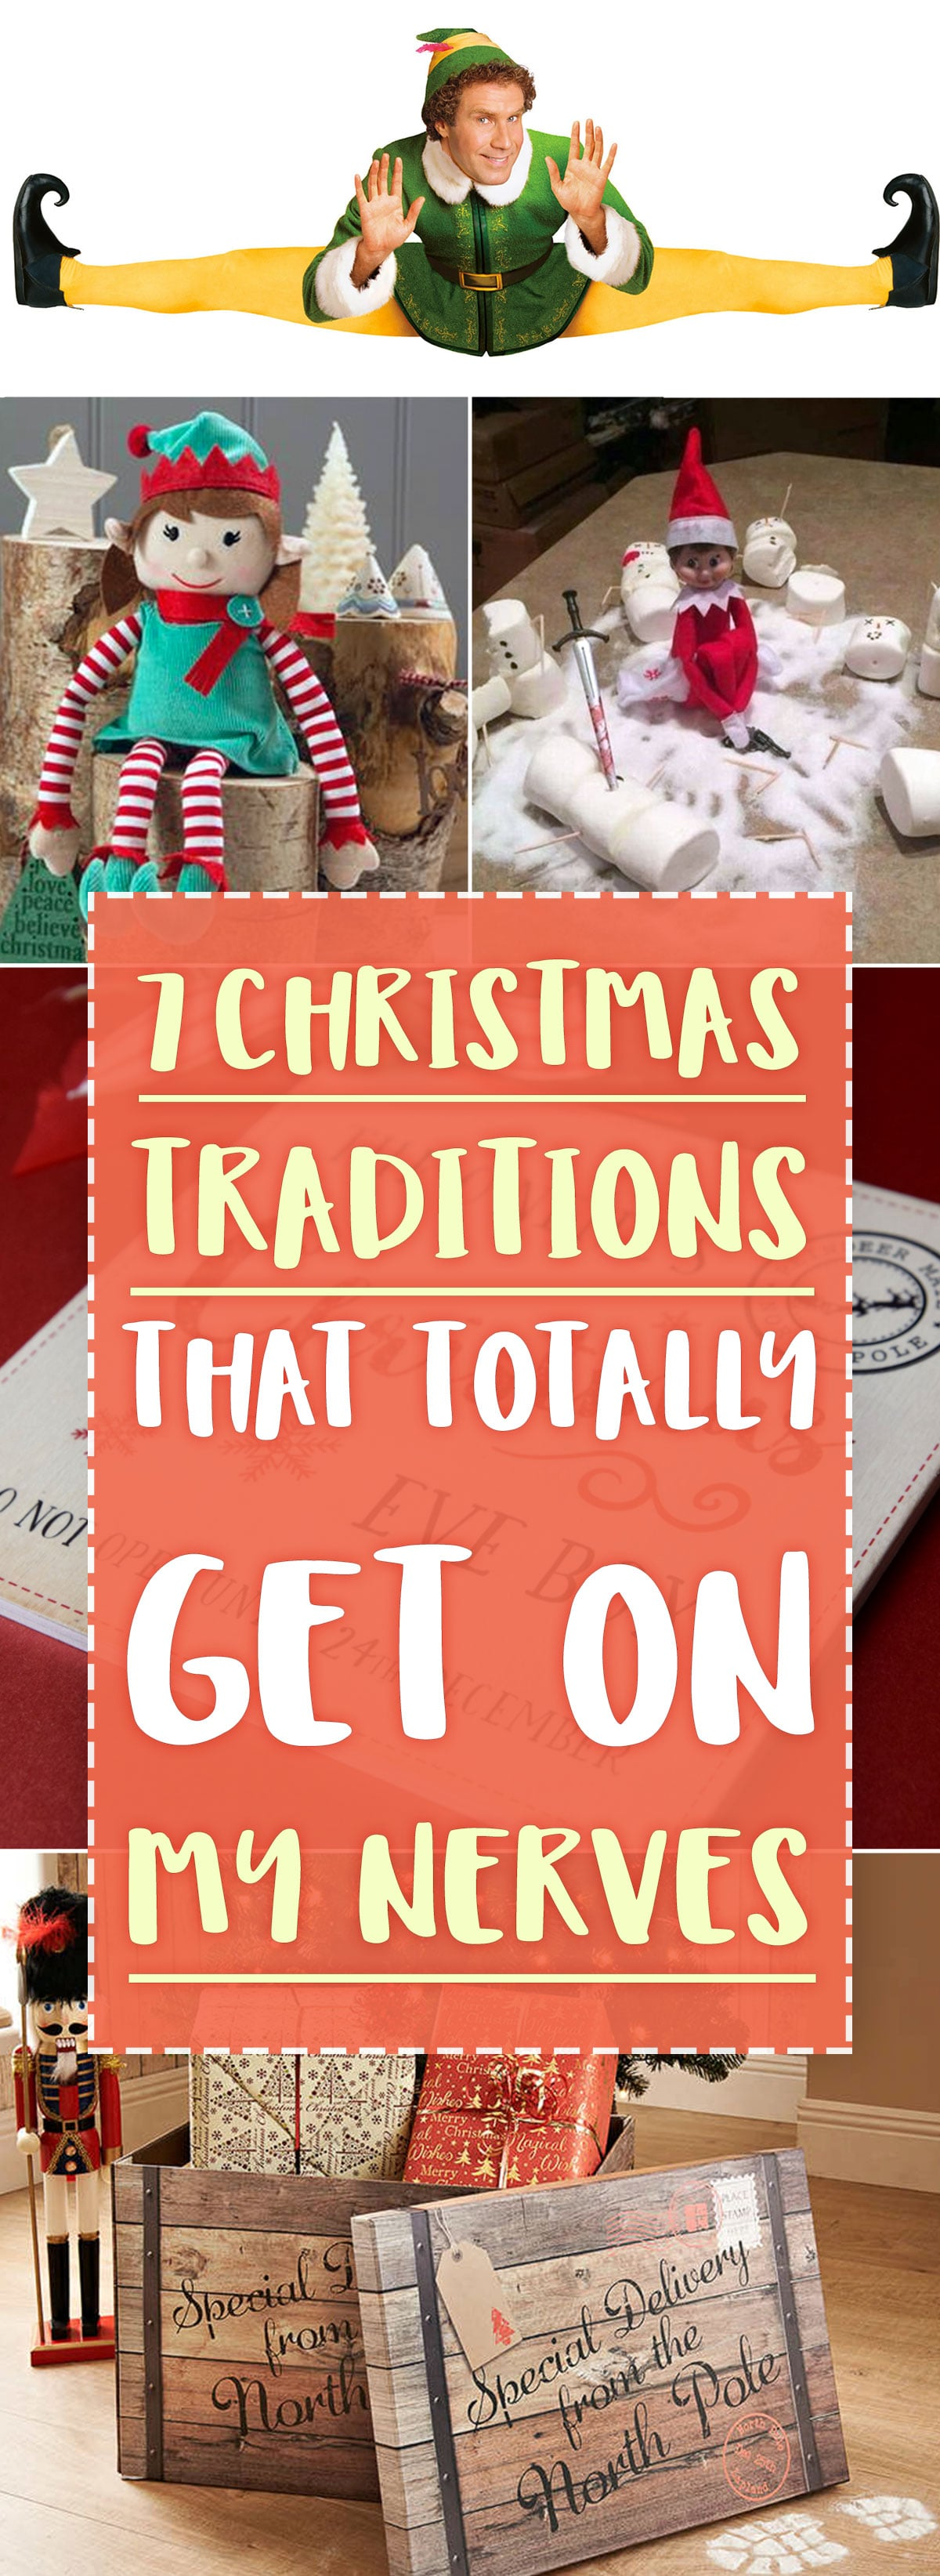 Christmas traditions nerves for pinterest